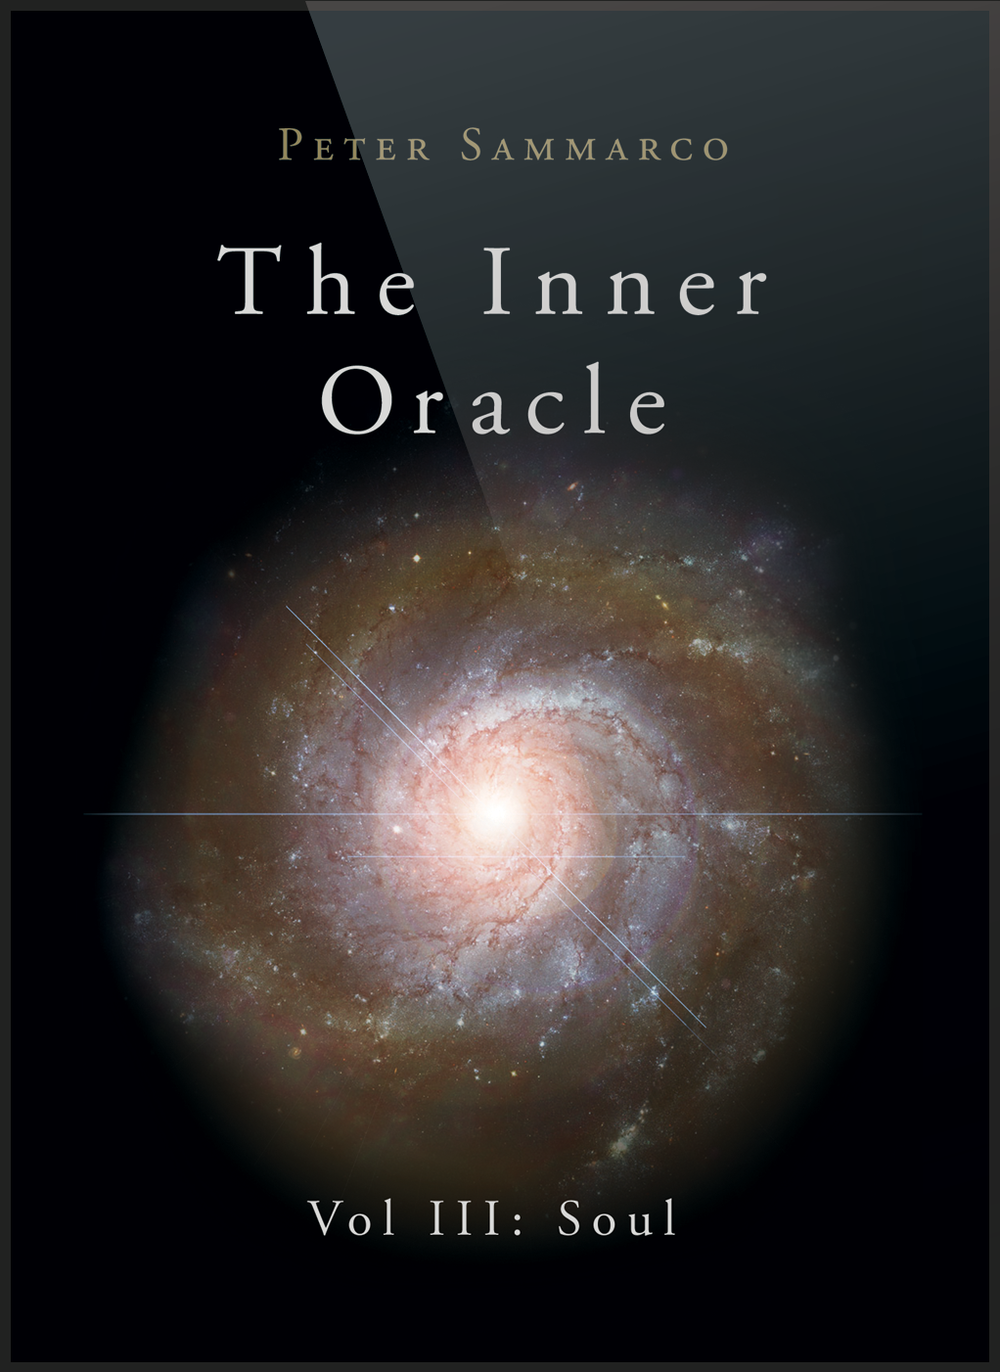 The Inner Oracle - Vol III: Soul